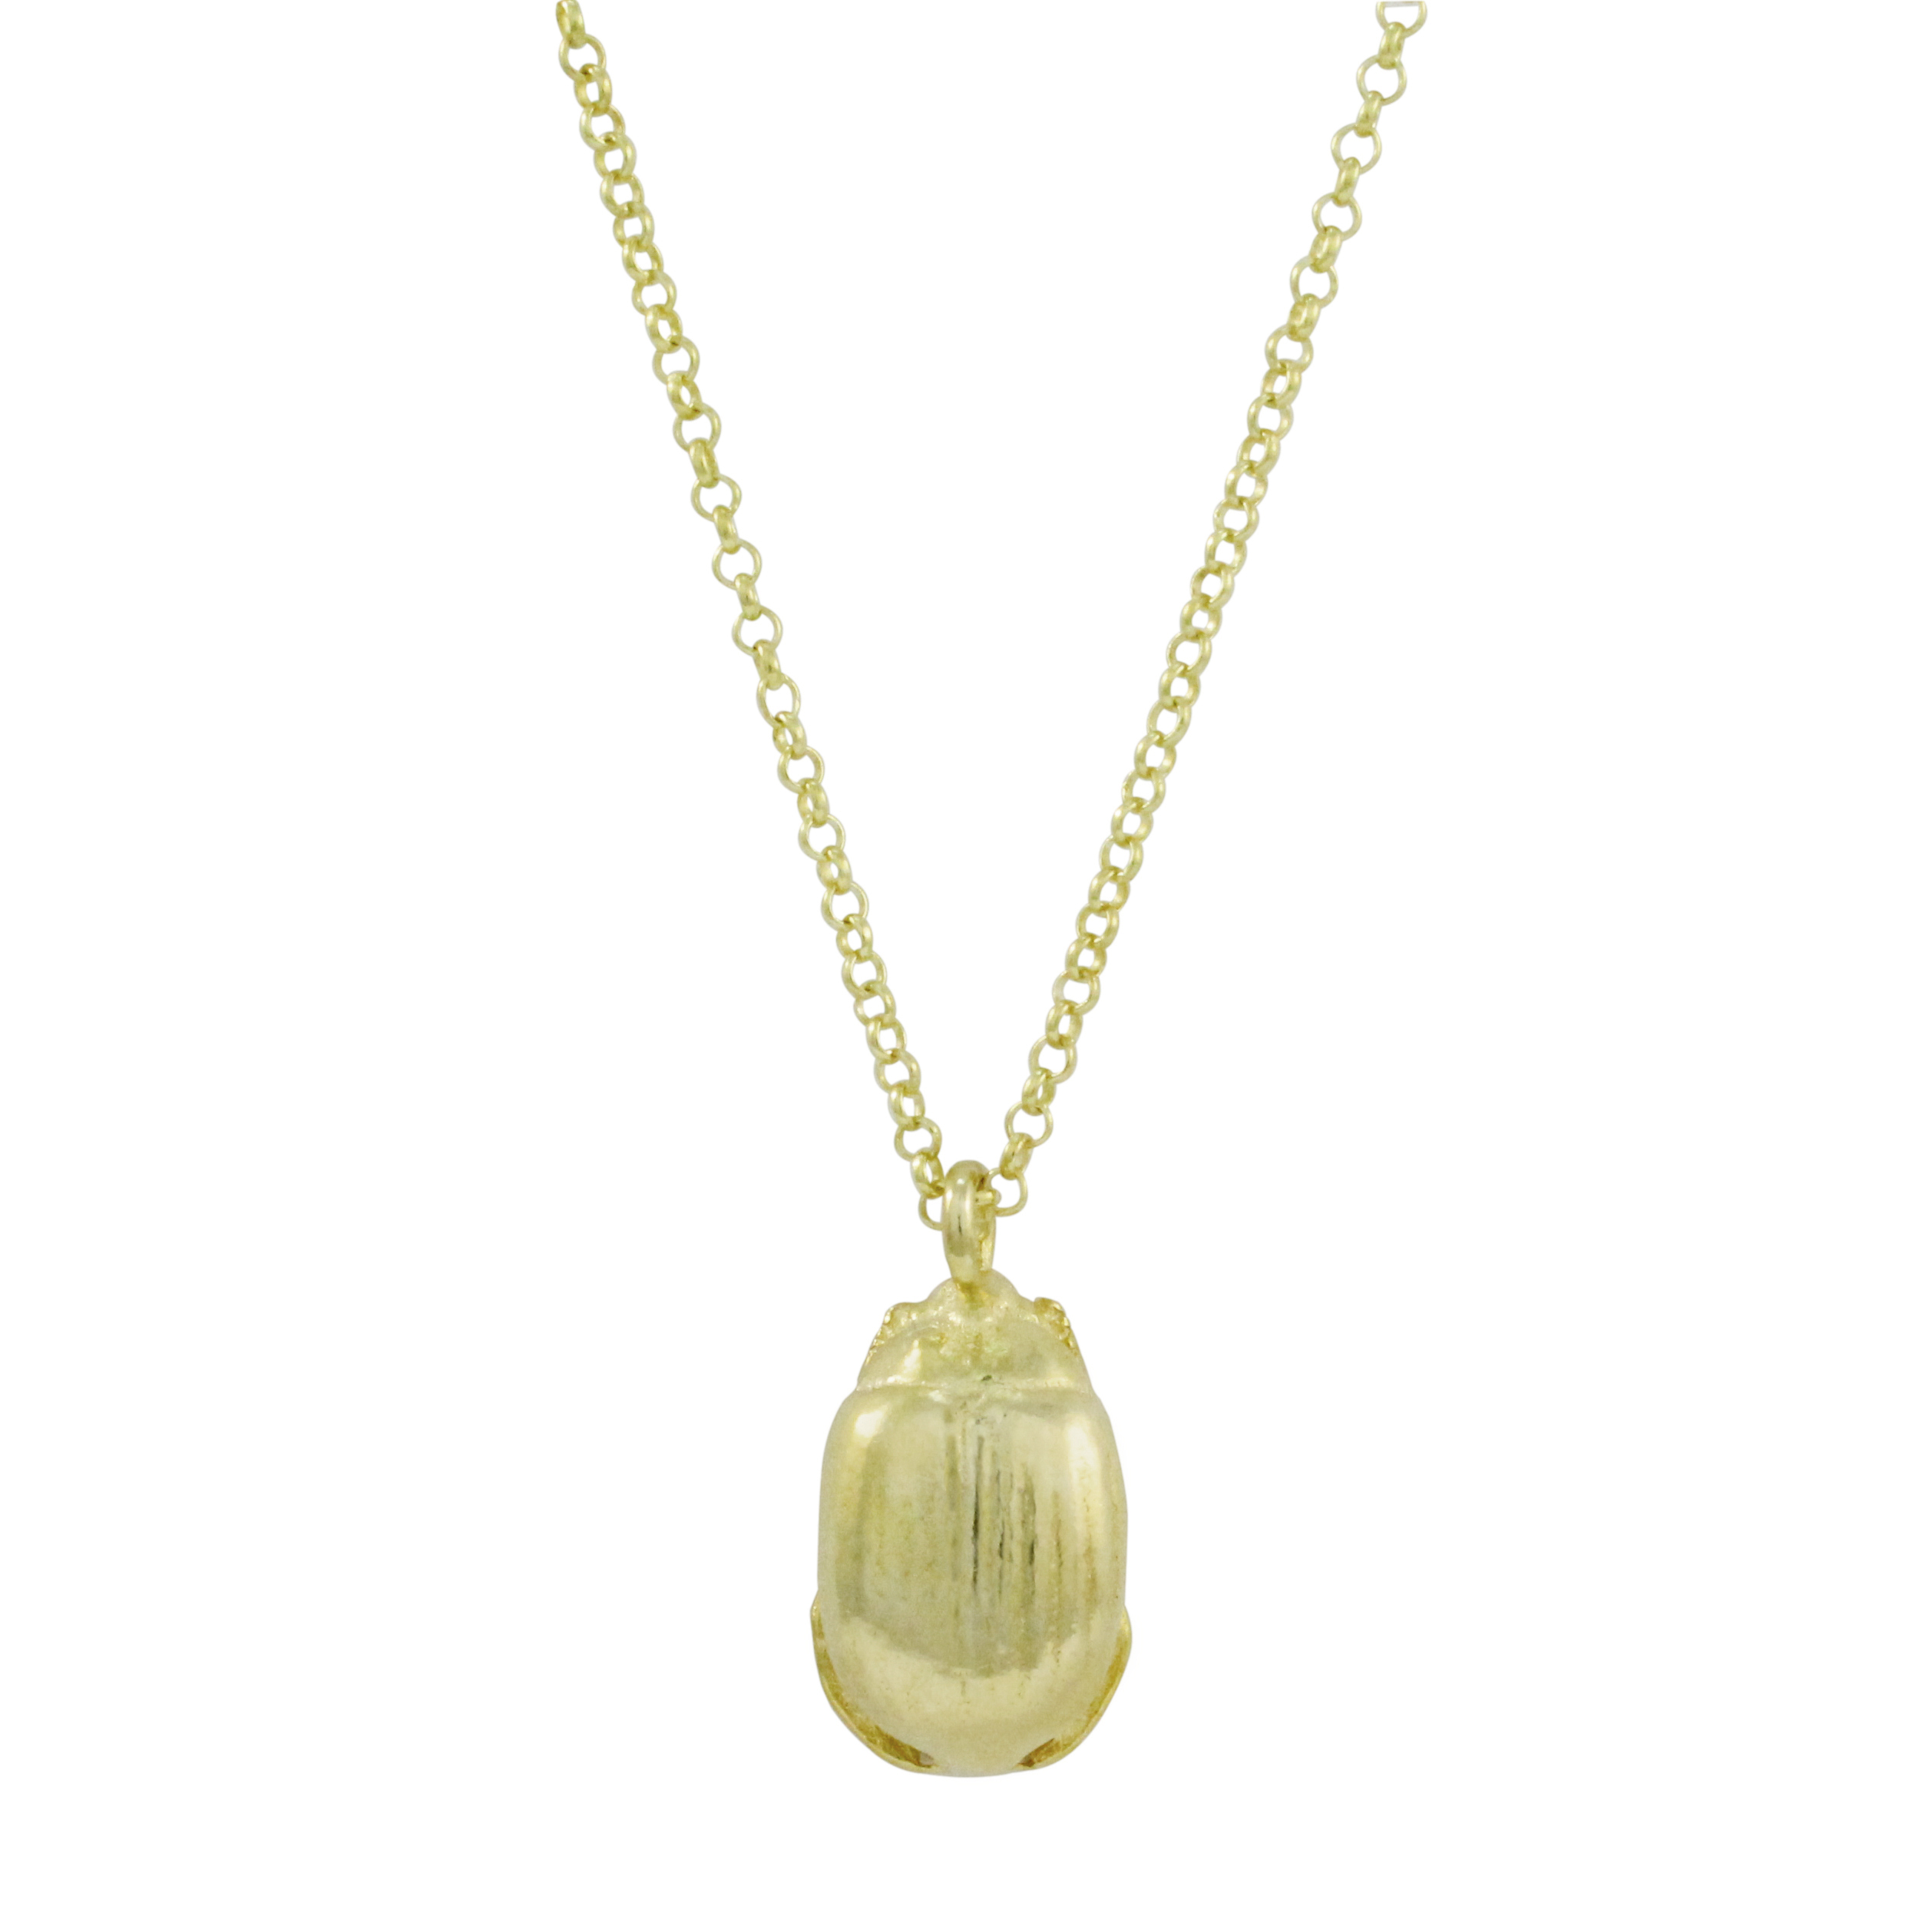 9ct Yellow Gold Small Beetle Necklace